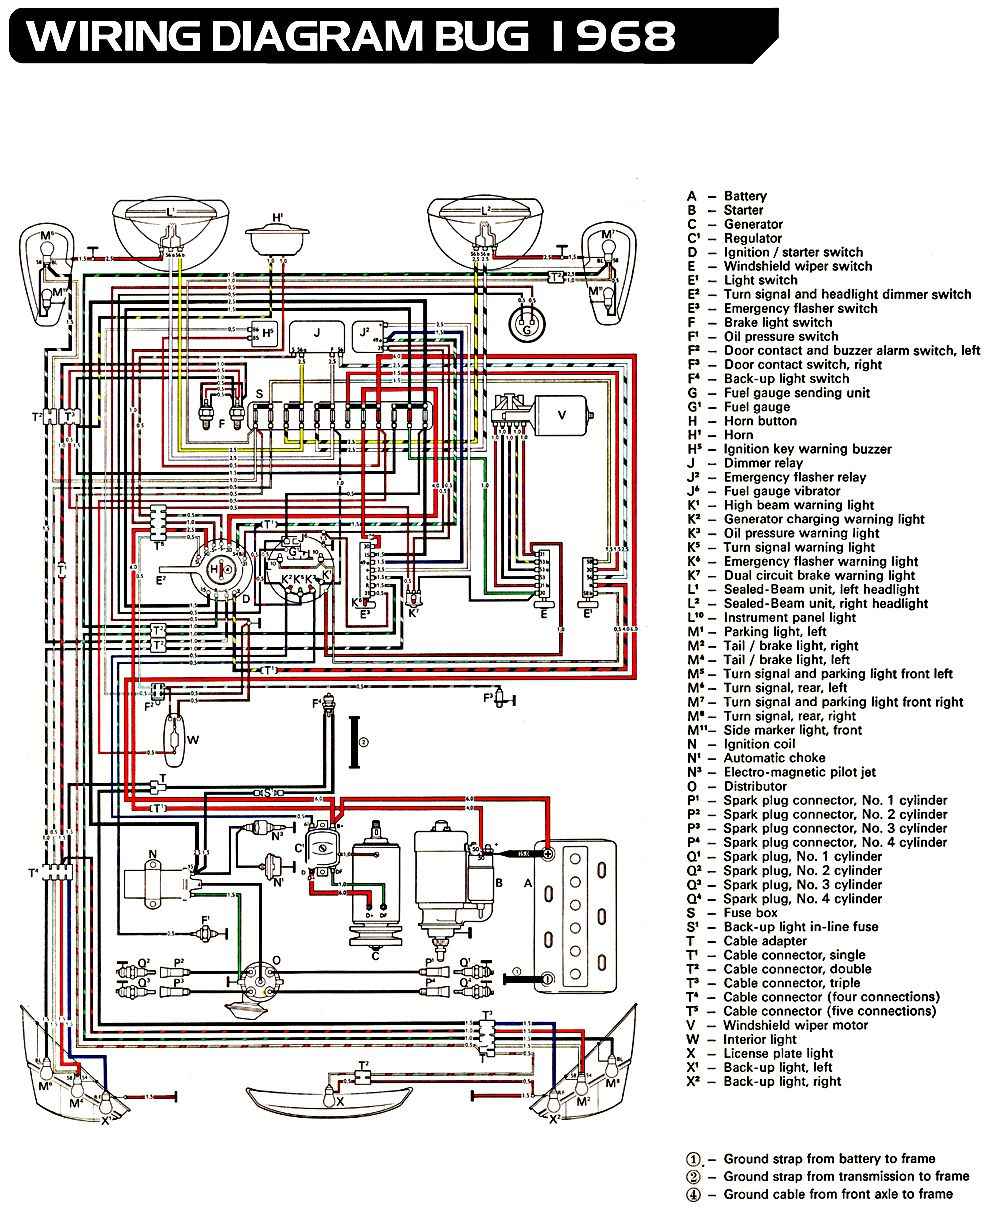 3a1908112d3826270ed5e3be362292bf 1966 vw beetle wiring harness data wiring diagram today